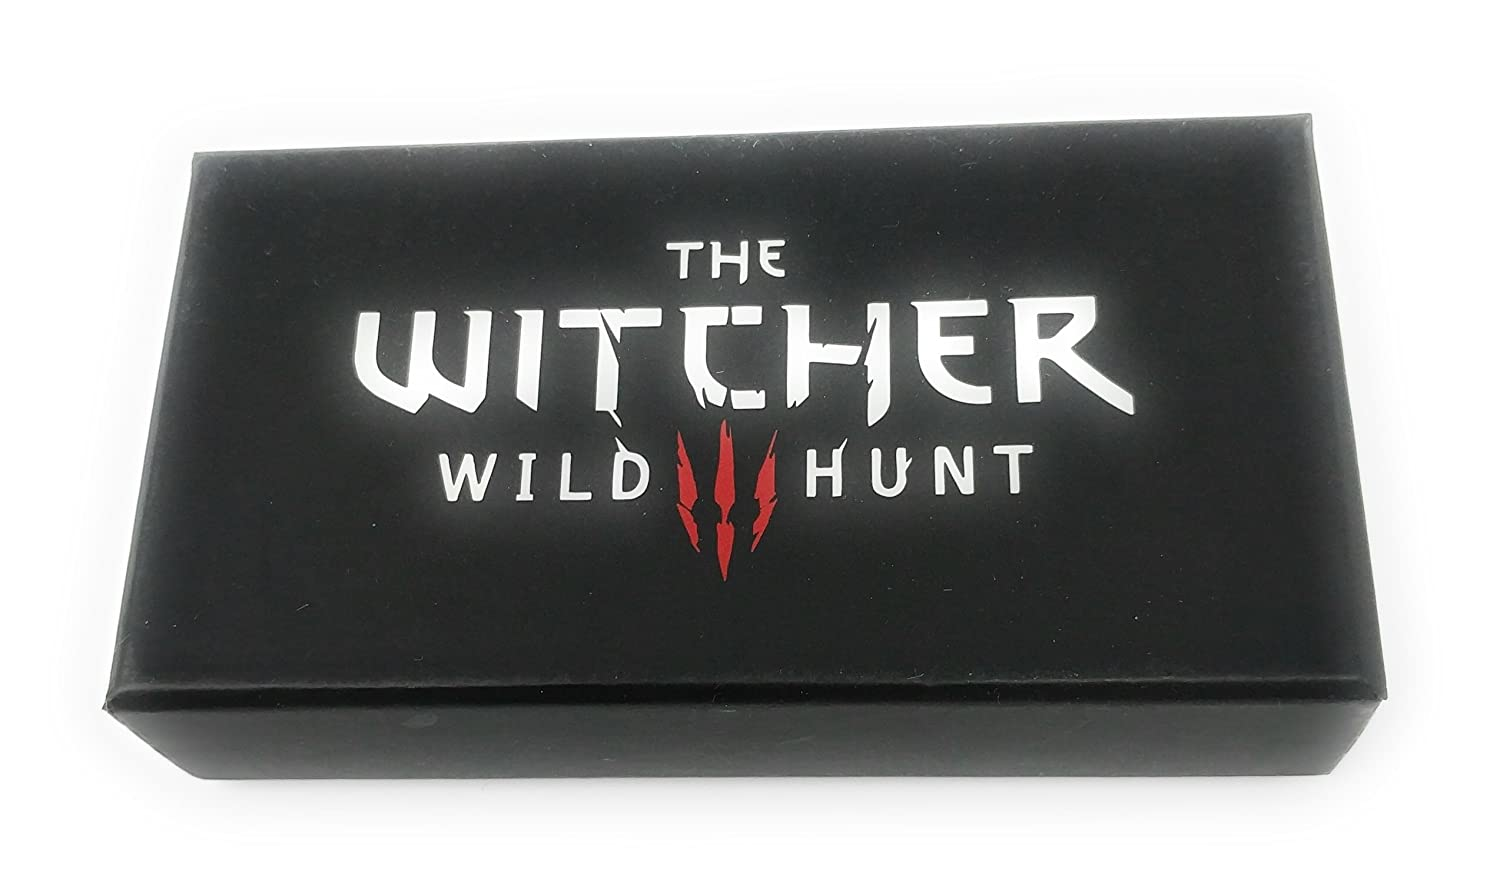 Witcher 3 Wild Hunt Bottle Stopper Loot Crate Gaming /並/行/輸/入/品